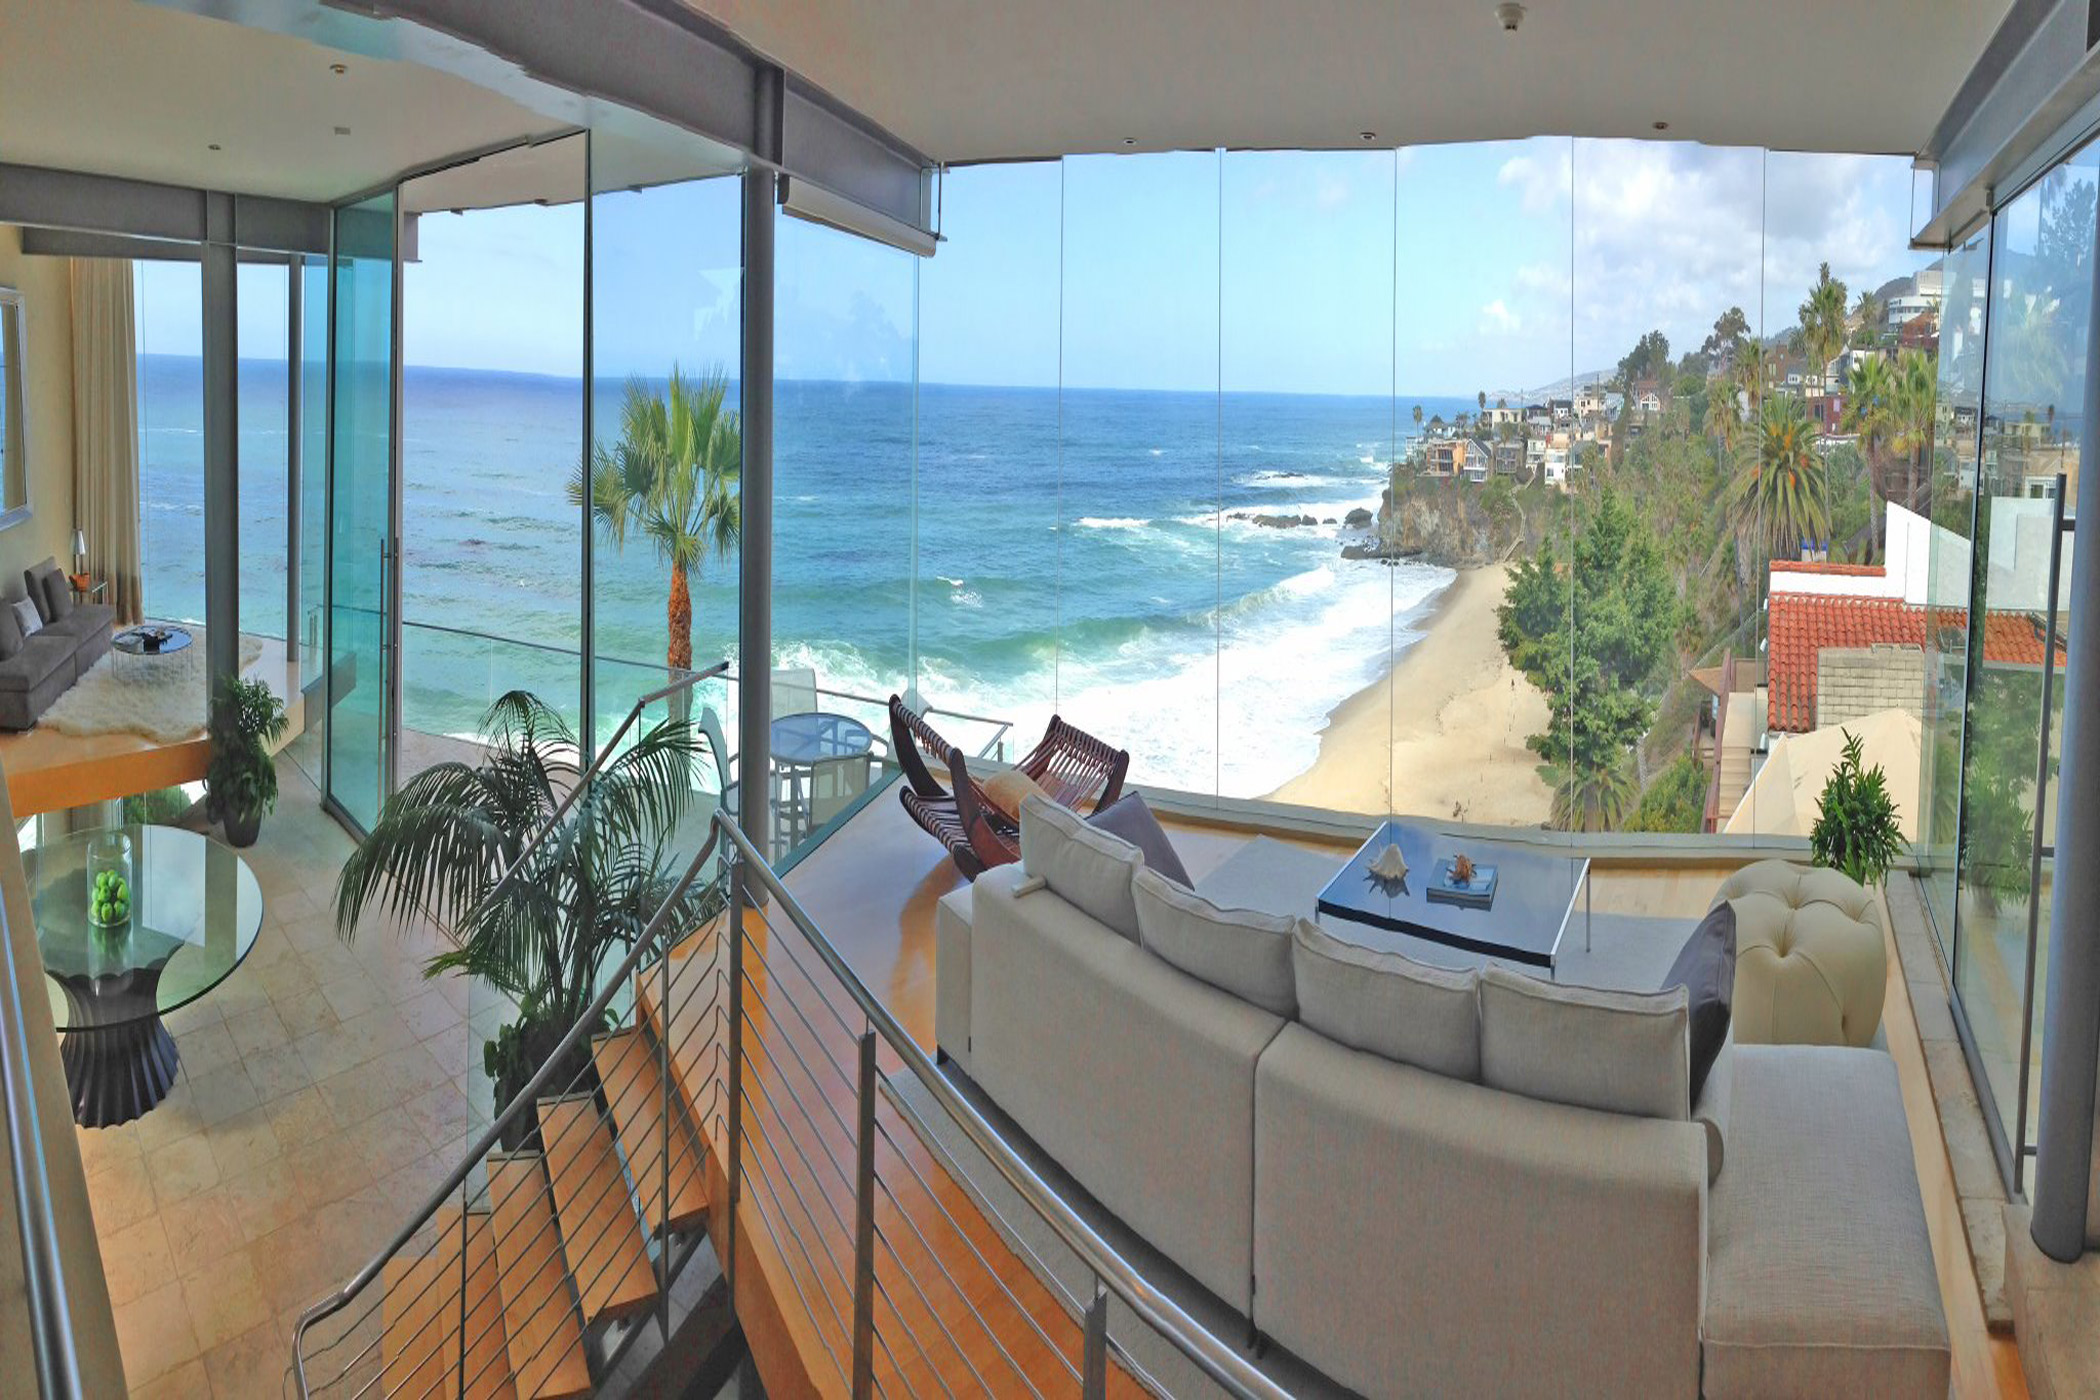 Real estate condos and homes for sale in laguna beach ca for Houses for sale laguna beach